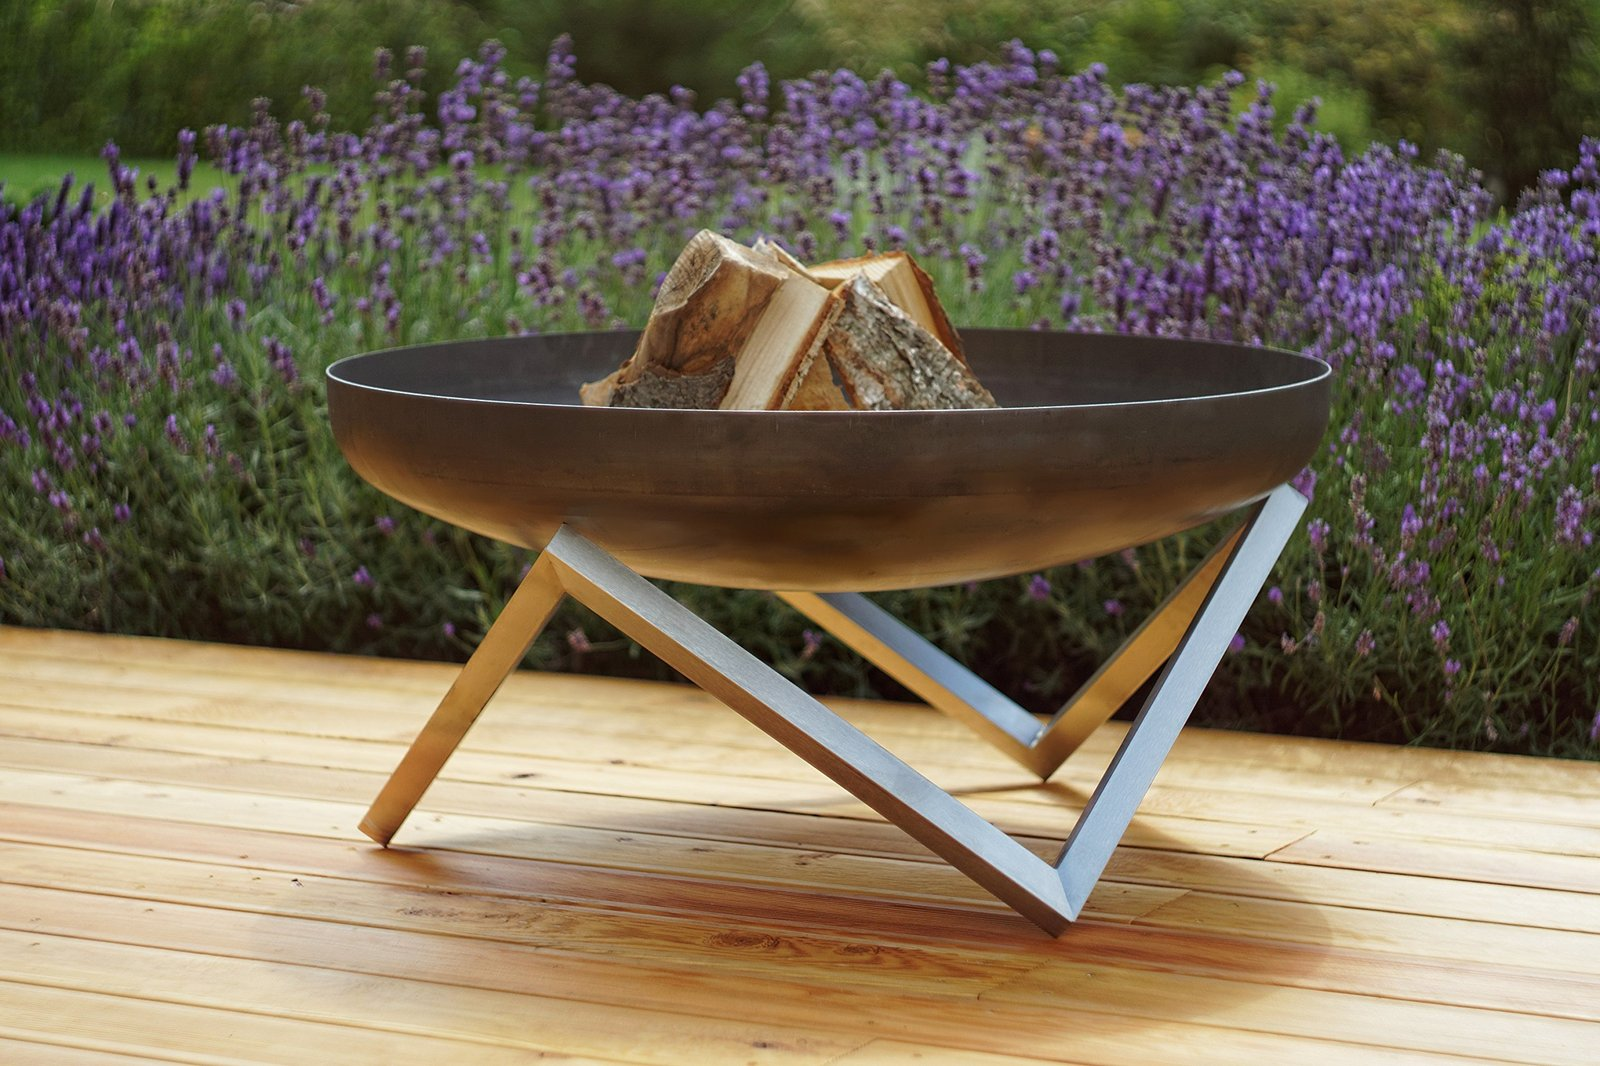 Modern outdoor patio rust stainless steel fire pit memel for Big fire pit